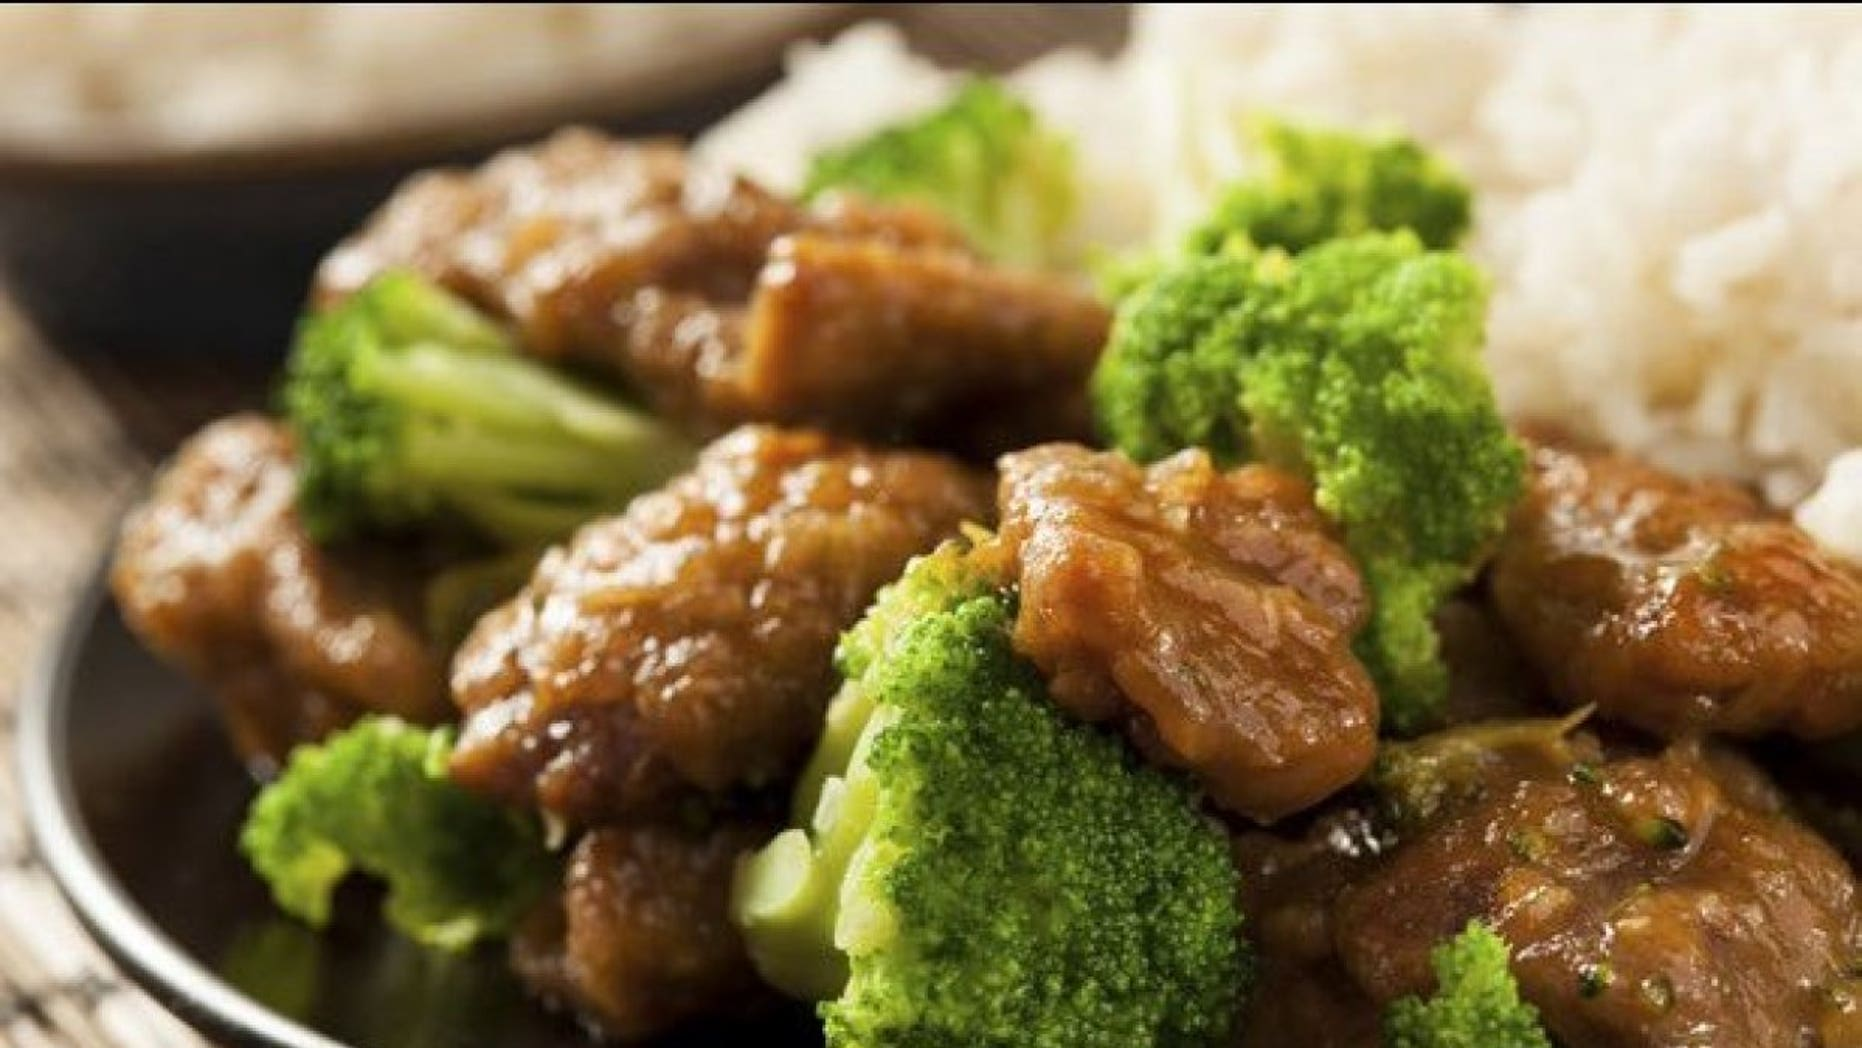 How much did you pay for that beef with broccoli?